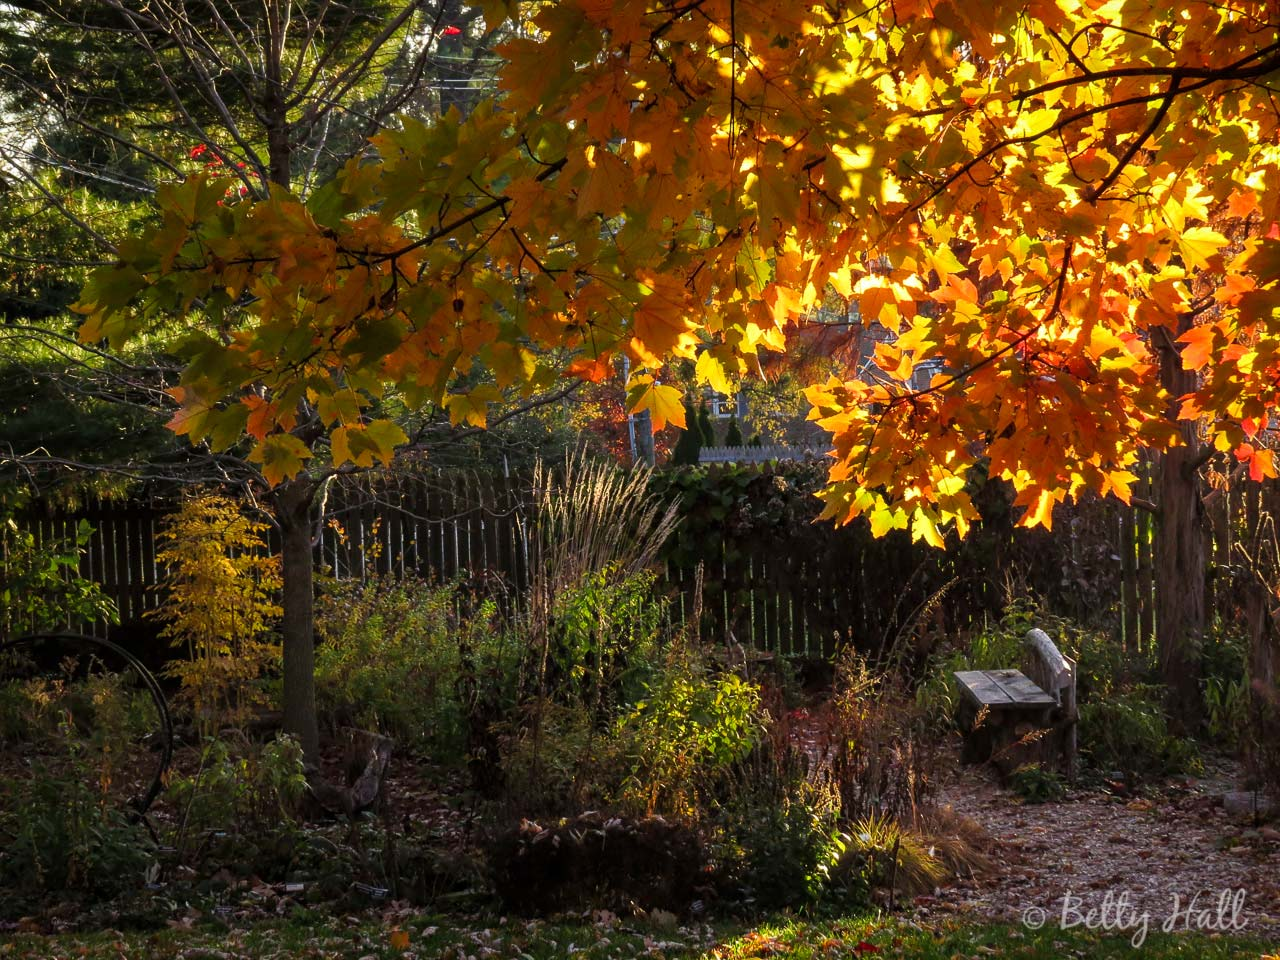 November garden and red maple leaves